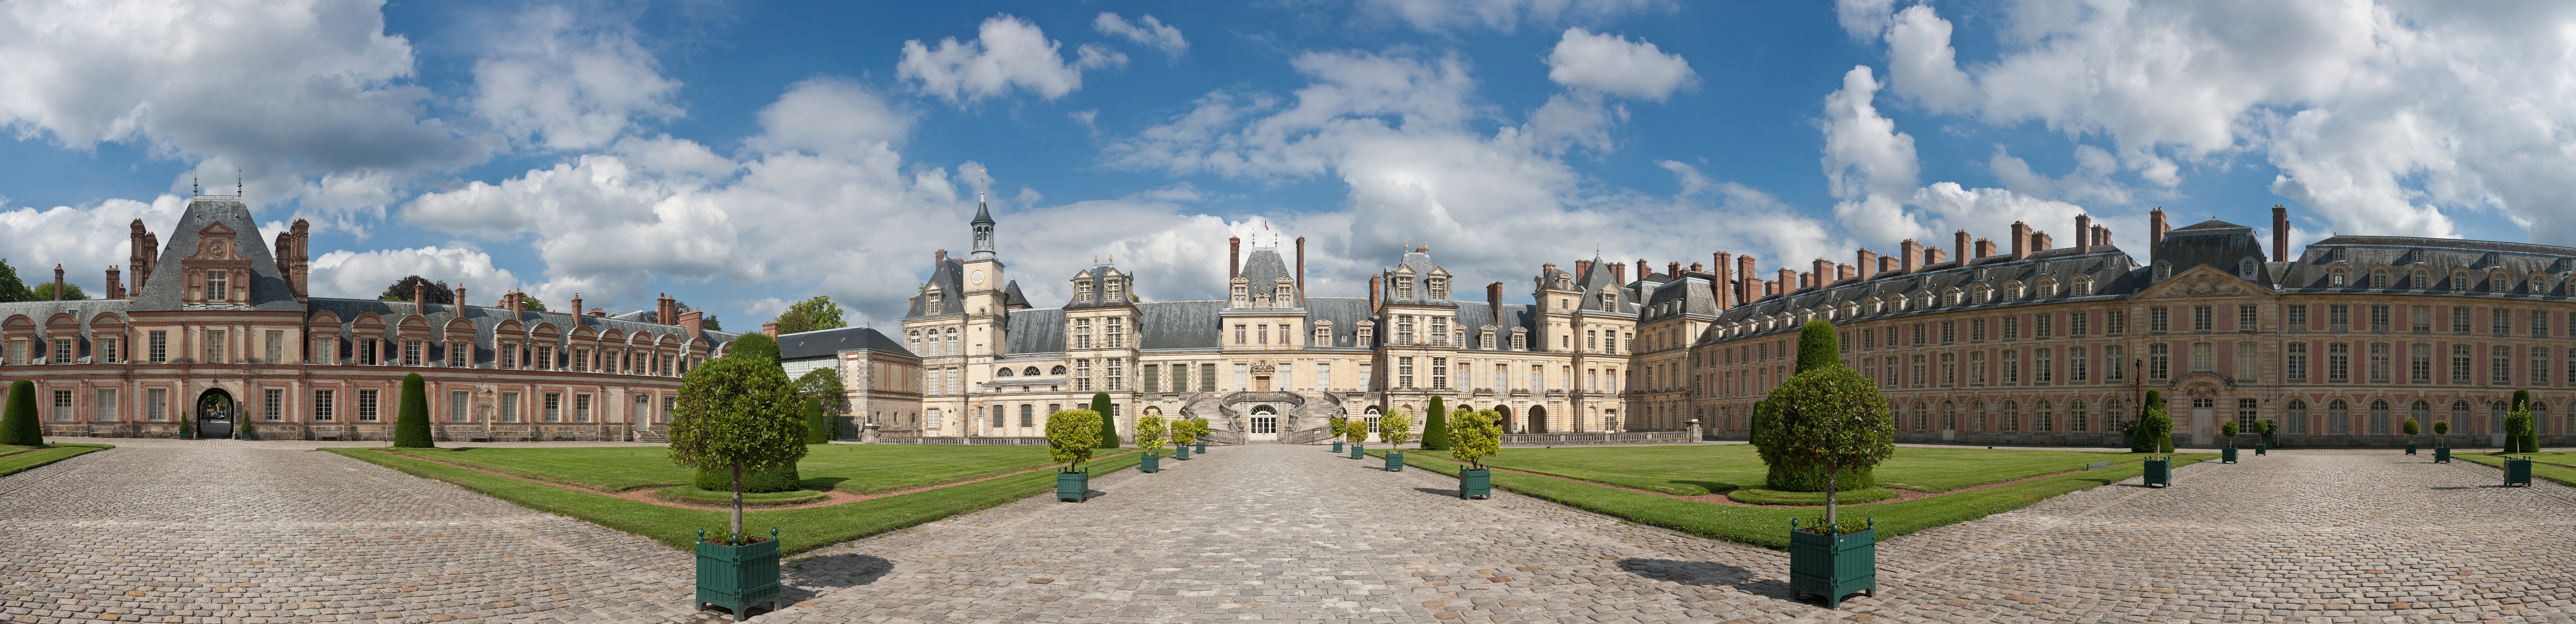 palace of fontainebleau familypedia fandom powered by wikia. Black Bedroom Furniture Sets. Home Design Ideas